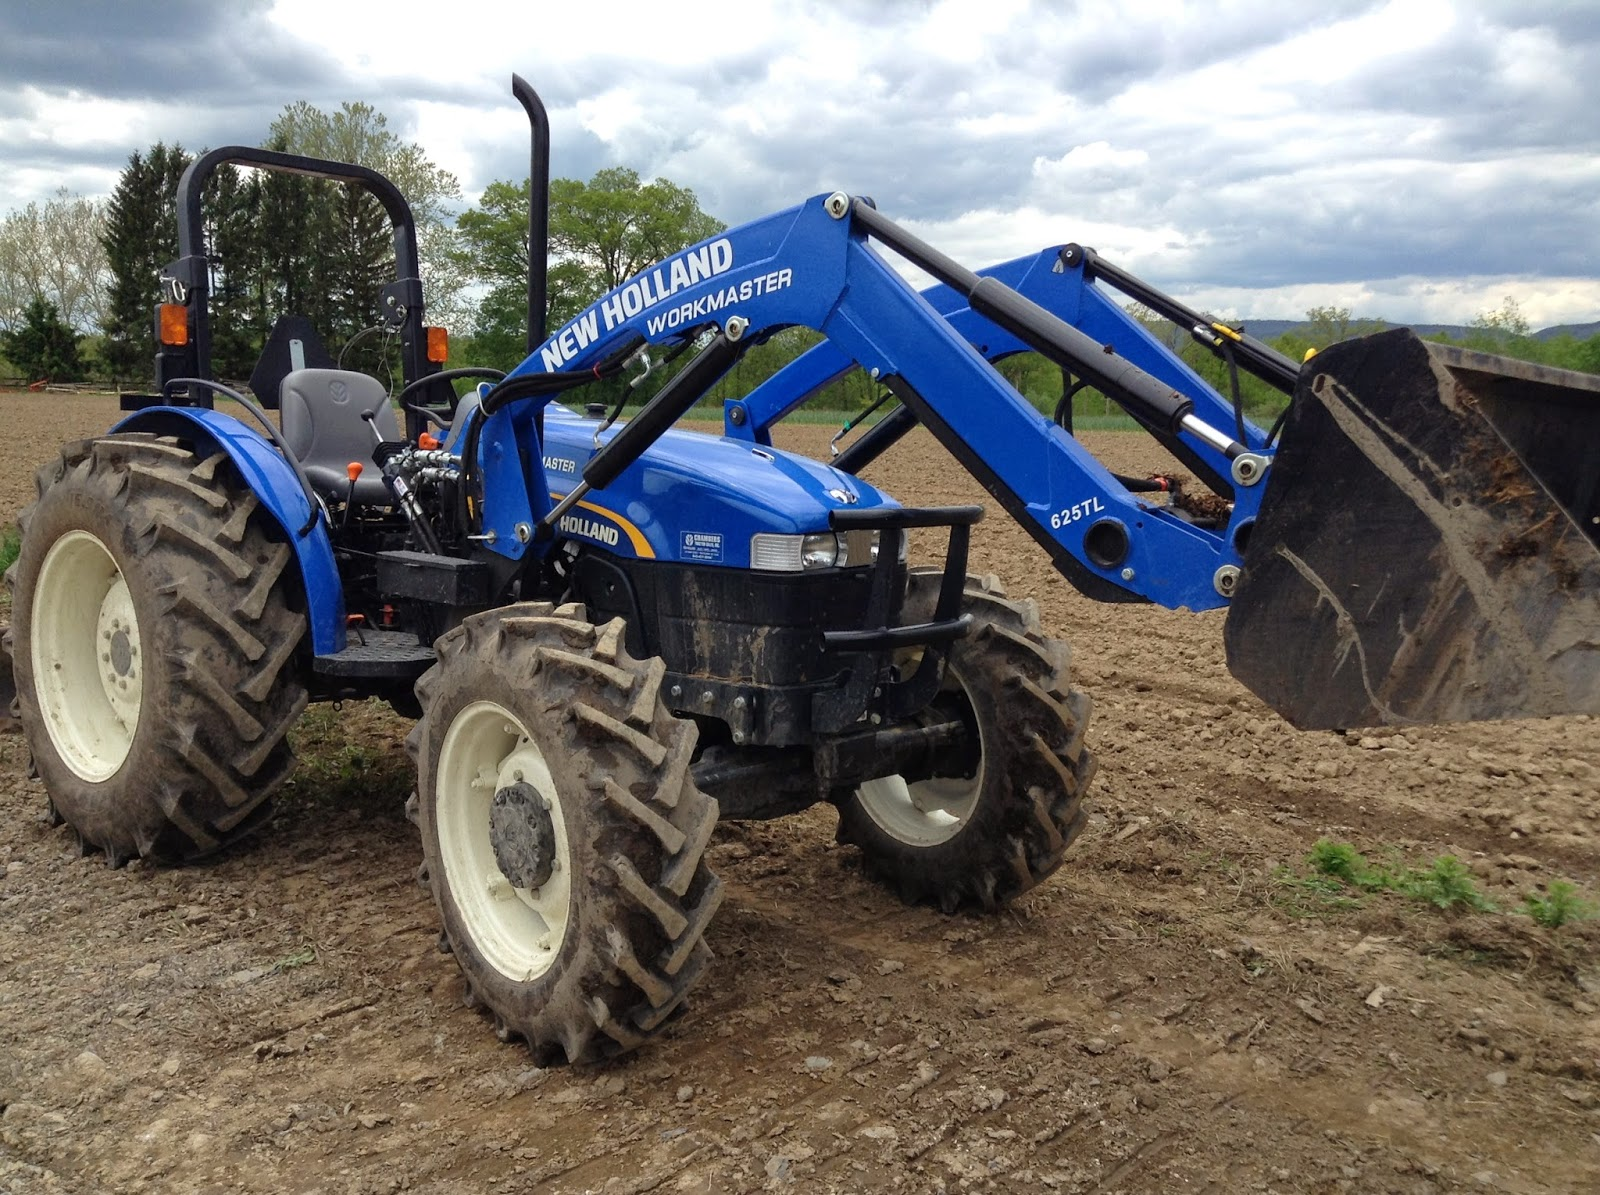 New Holland Tractor, blue